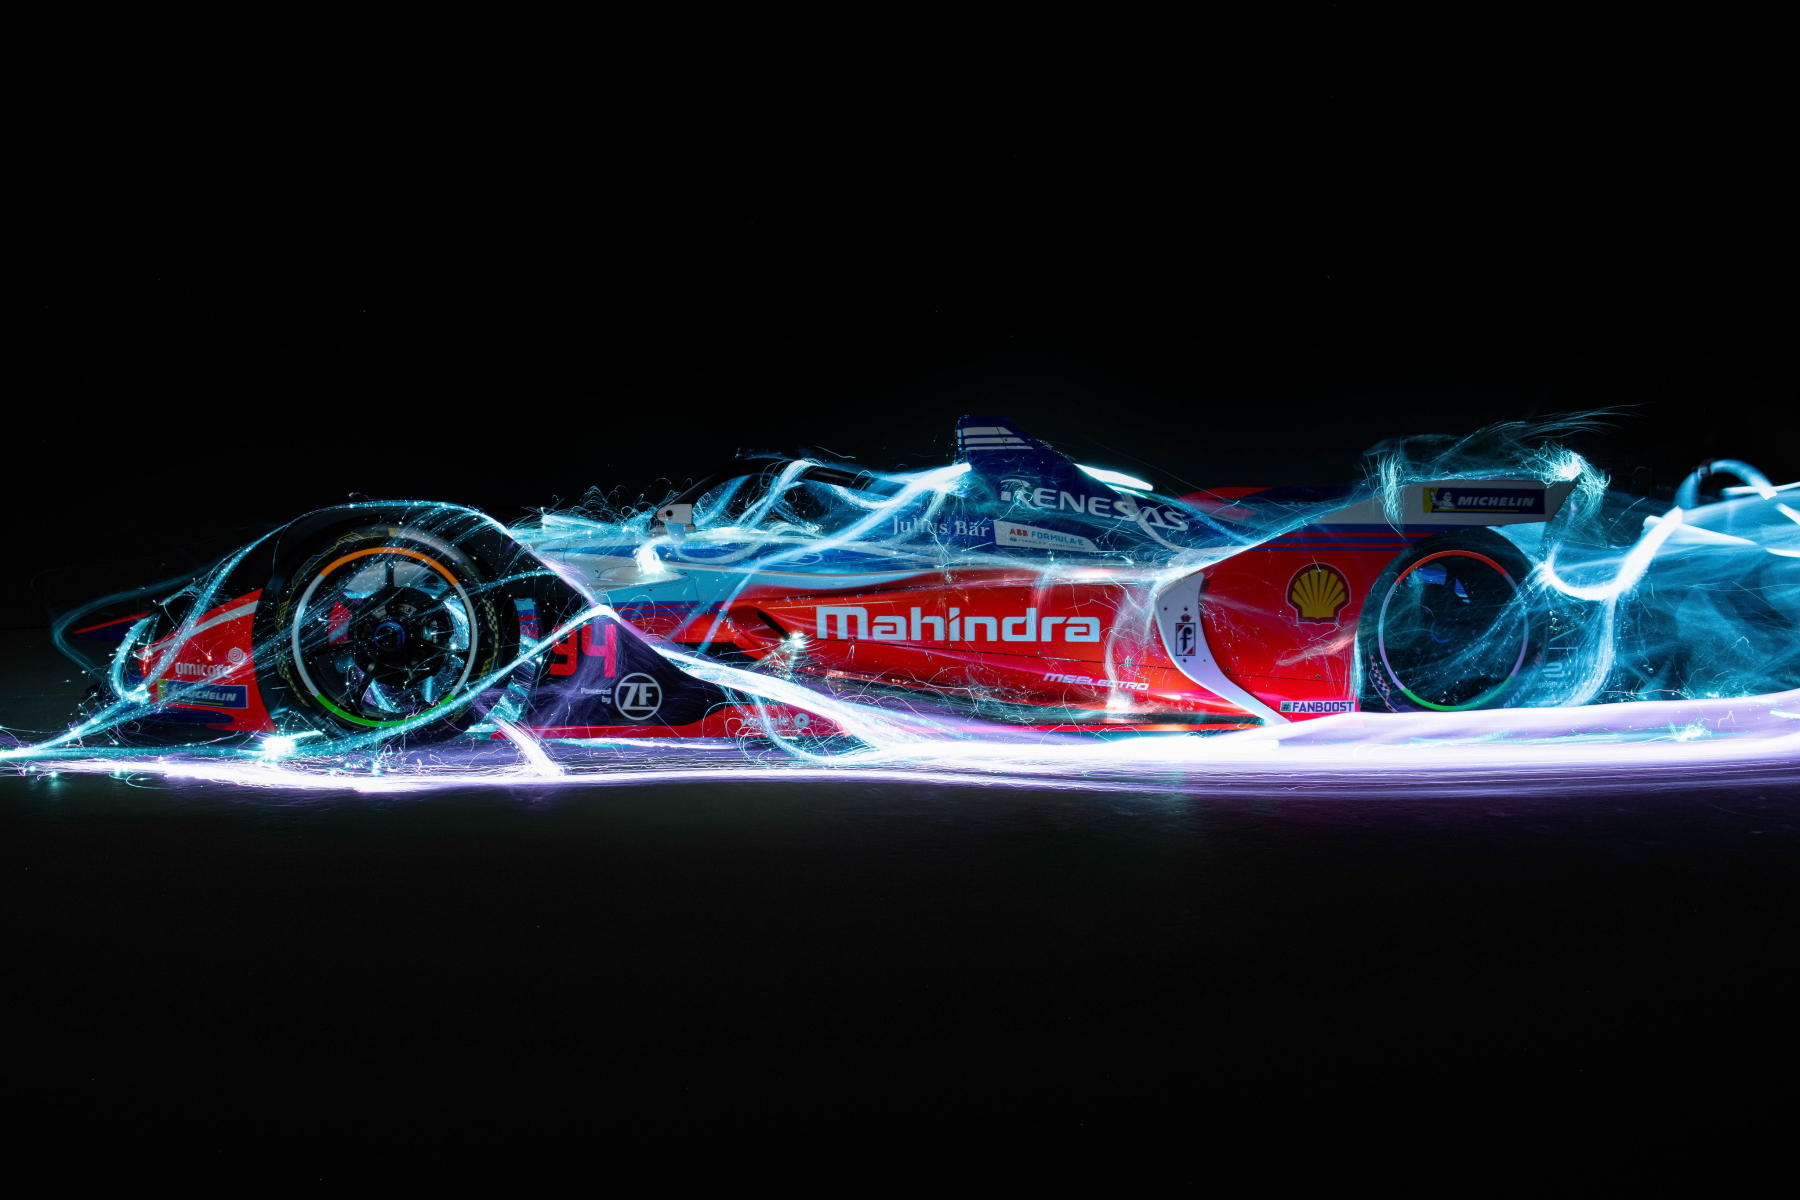 Mahindra Season 6 car photo art side view 1800px.jpg